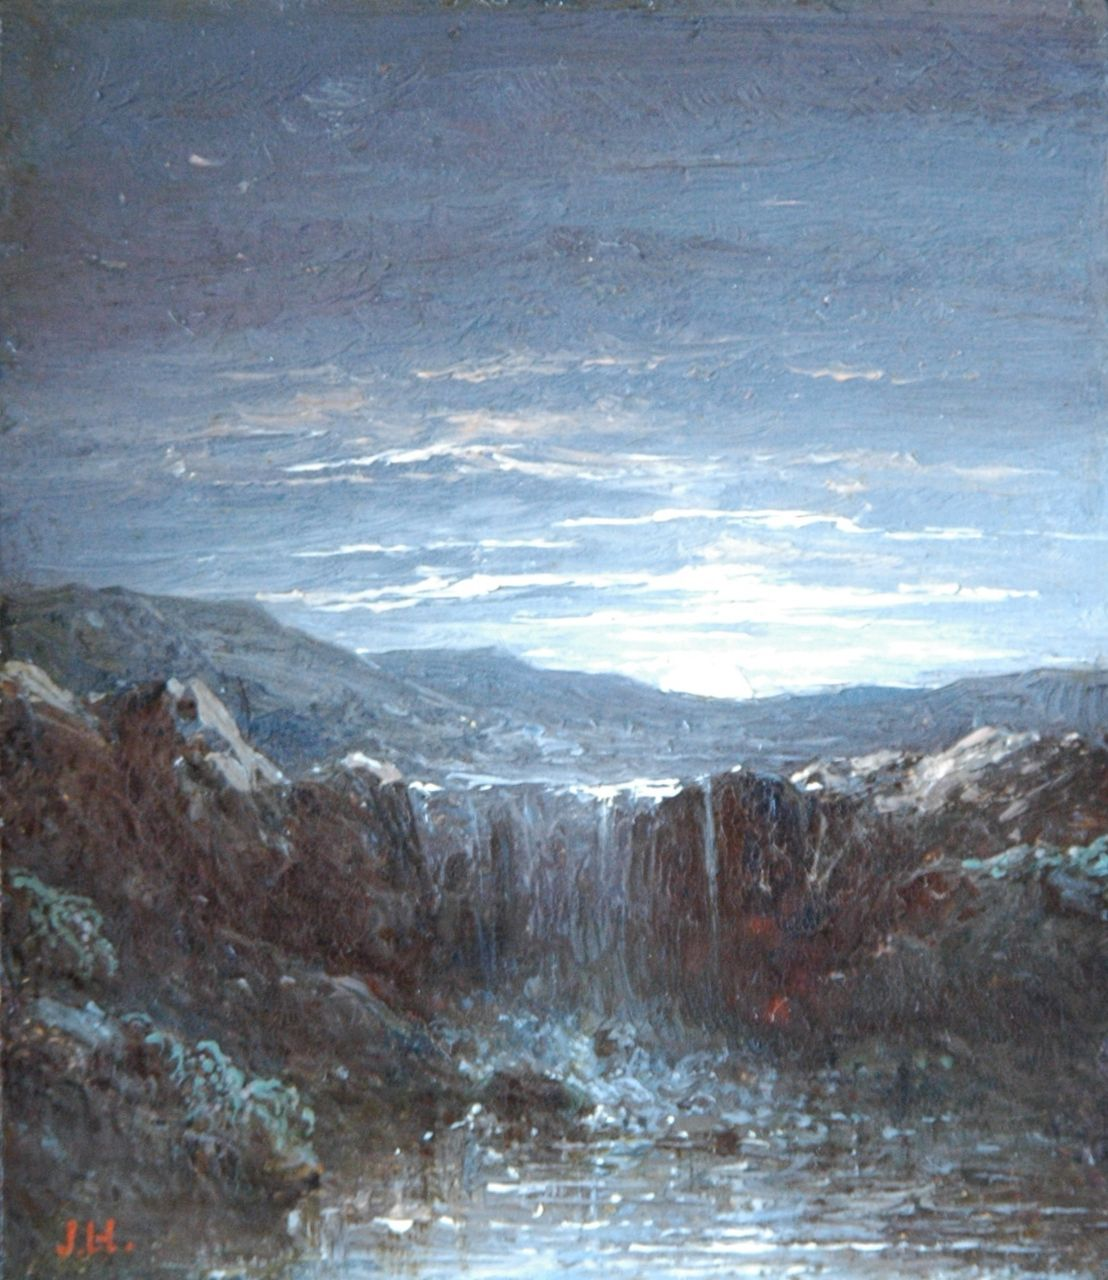 Hilverdink J.  | Johannes Hilverdink, Waterfall, oil on panel 10.1 x 8.7 cm, signed l.l. with initials and gifted to the Kunsthal